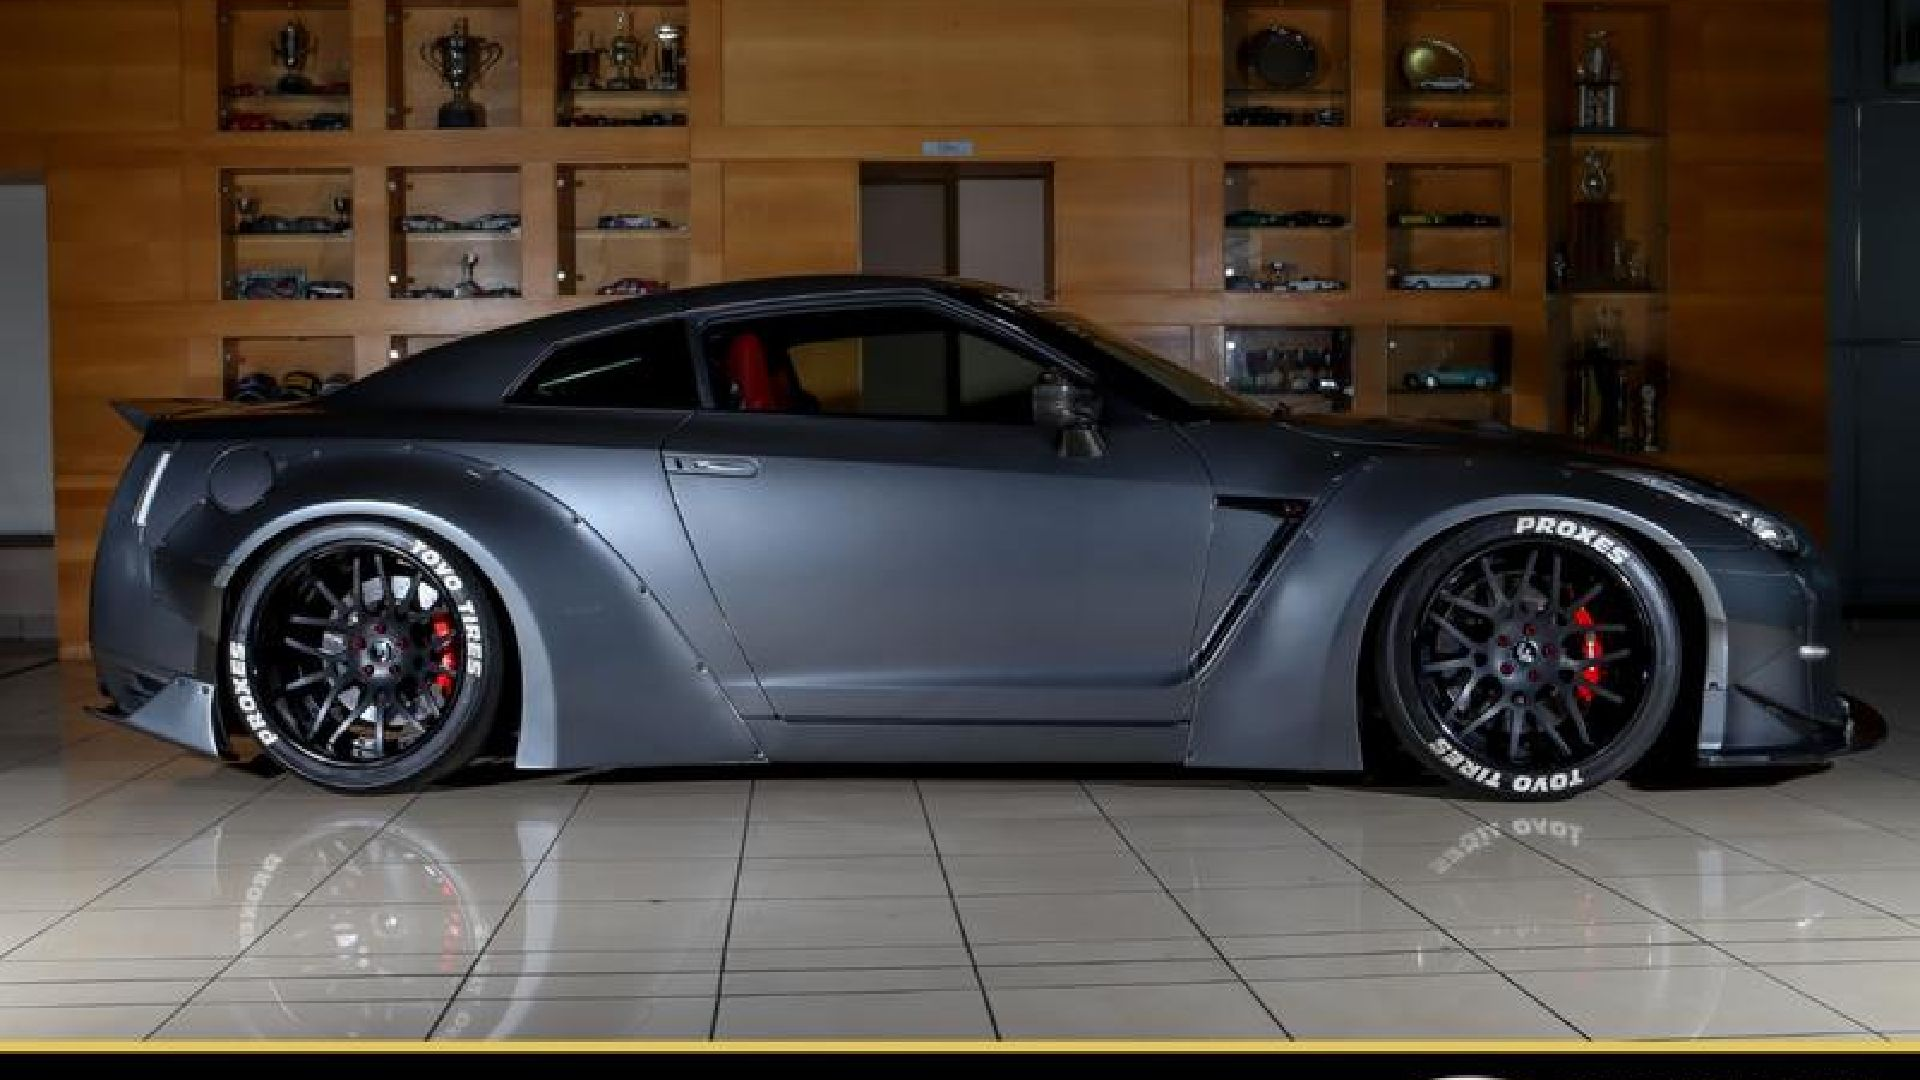 Nissan GT-R (Premium Edition) at Speedy Car Sales